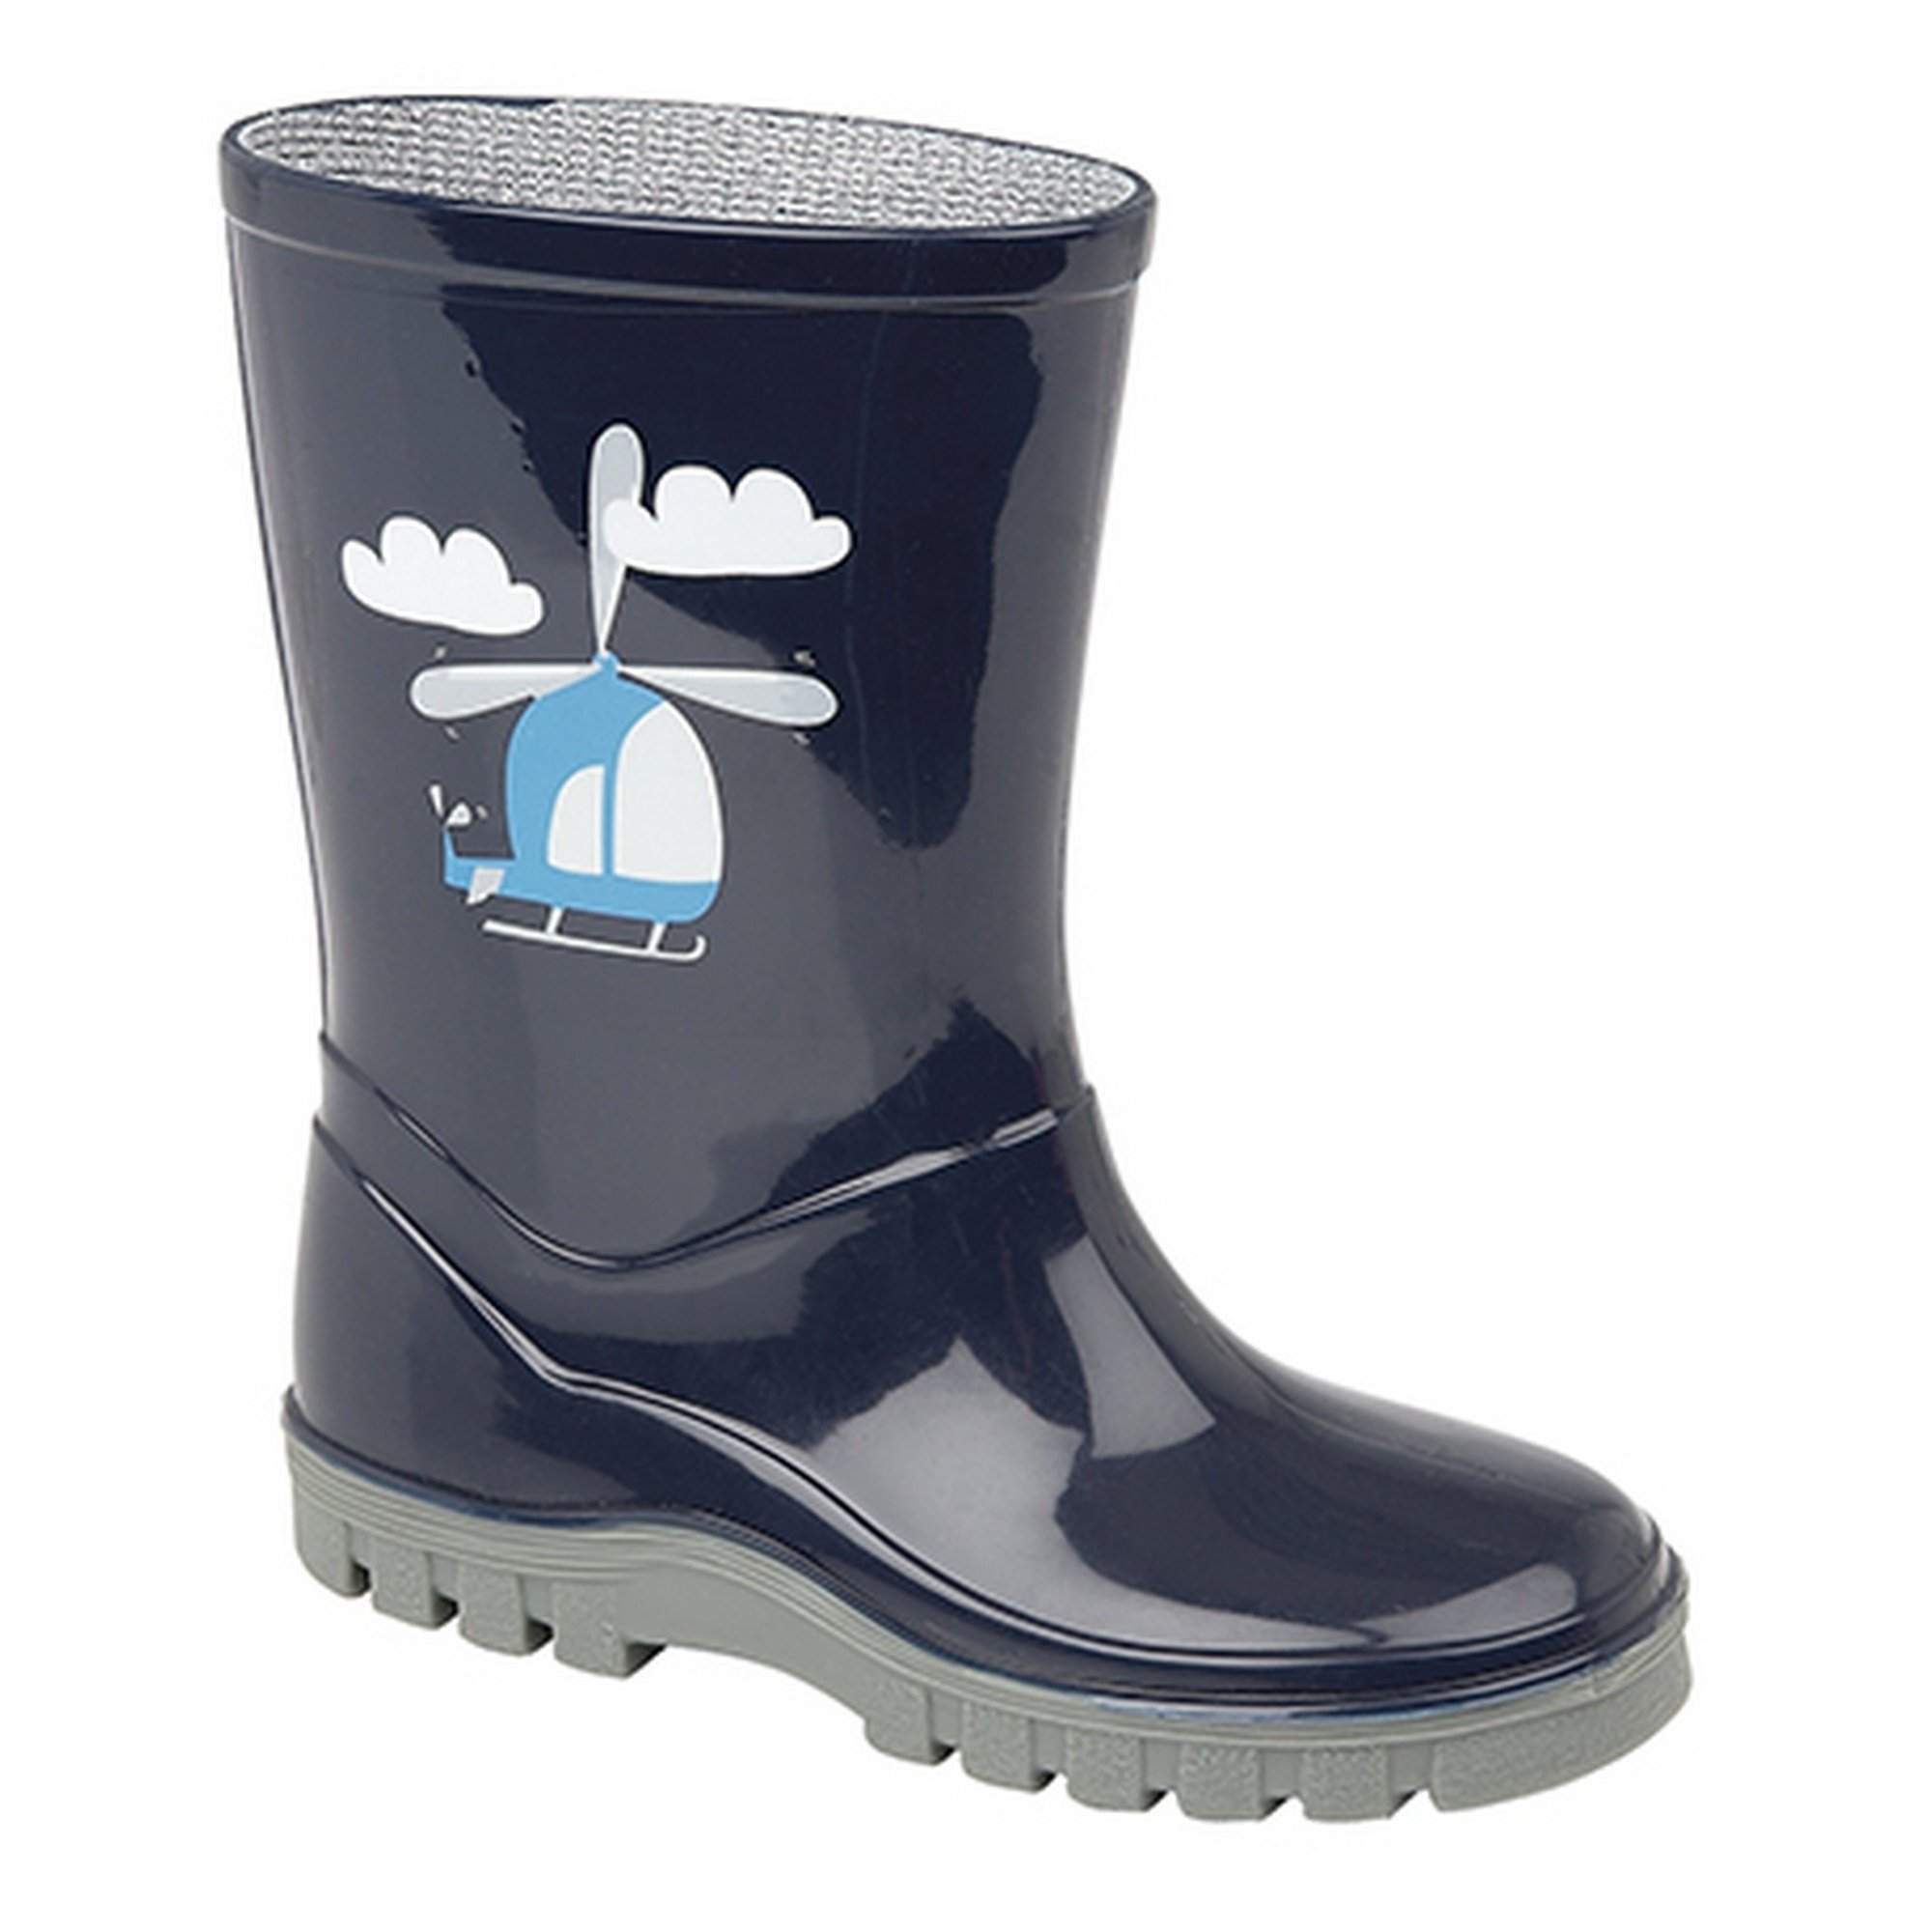 Stormwell Childrens/Boys Helicopter PVC Wellington Boots (11 US Junior) (Navy Blue/Gray)